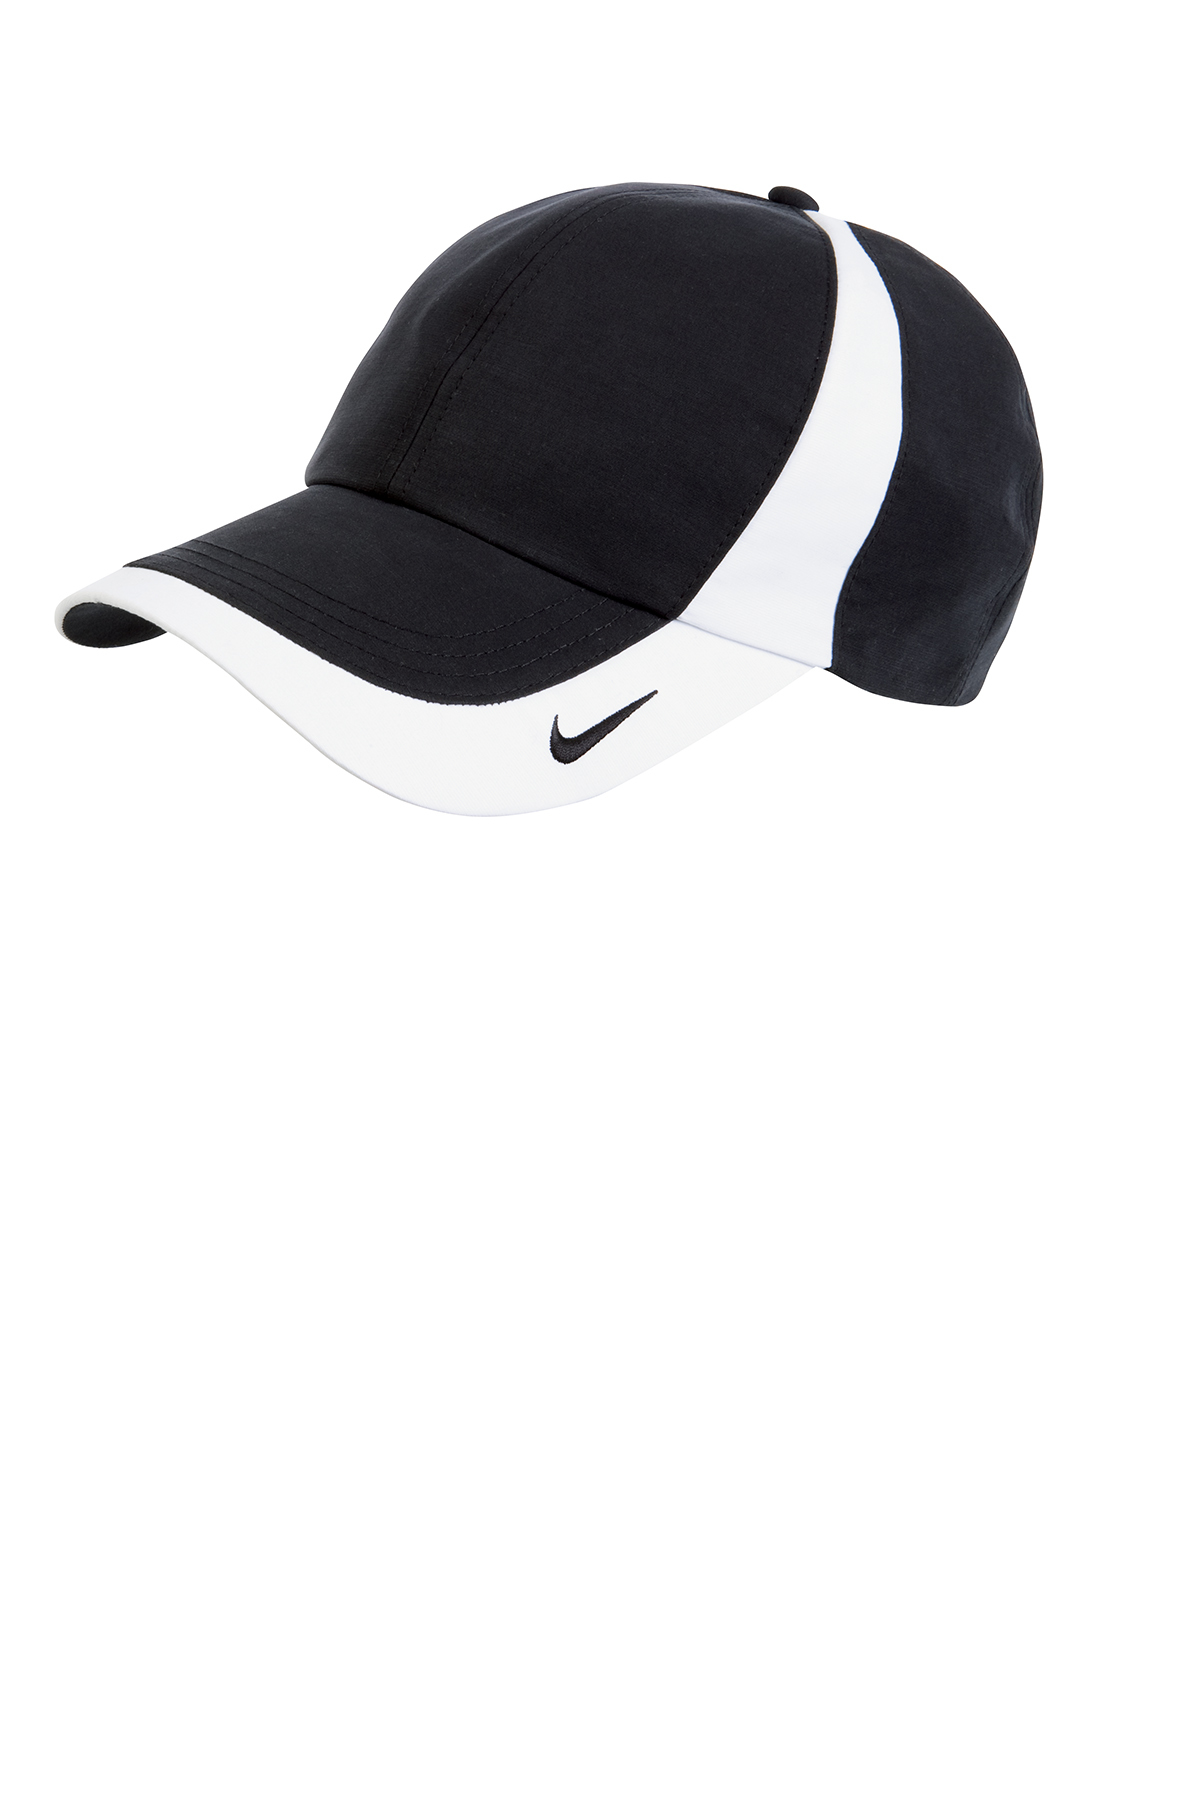 3f83a8d1 Nike Dri-FIT Technical Colorblock Cap | Performance/Team | Caps ...